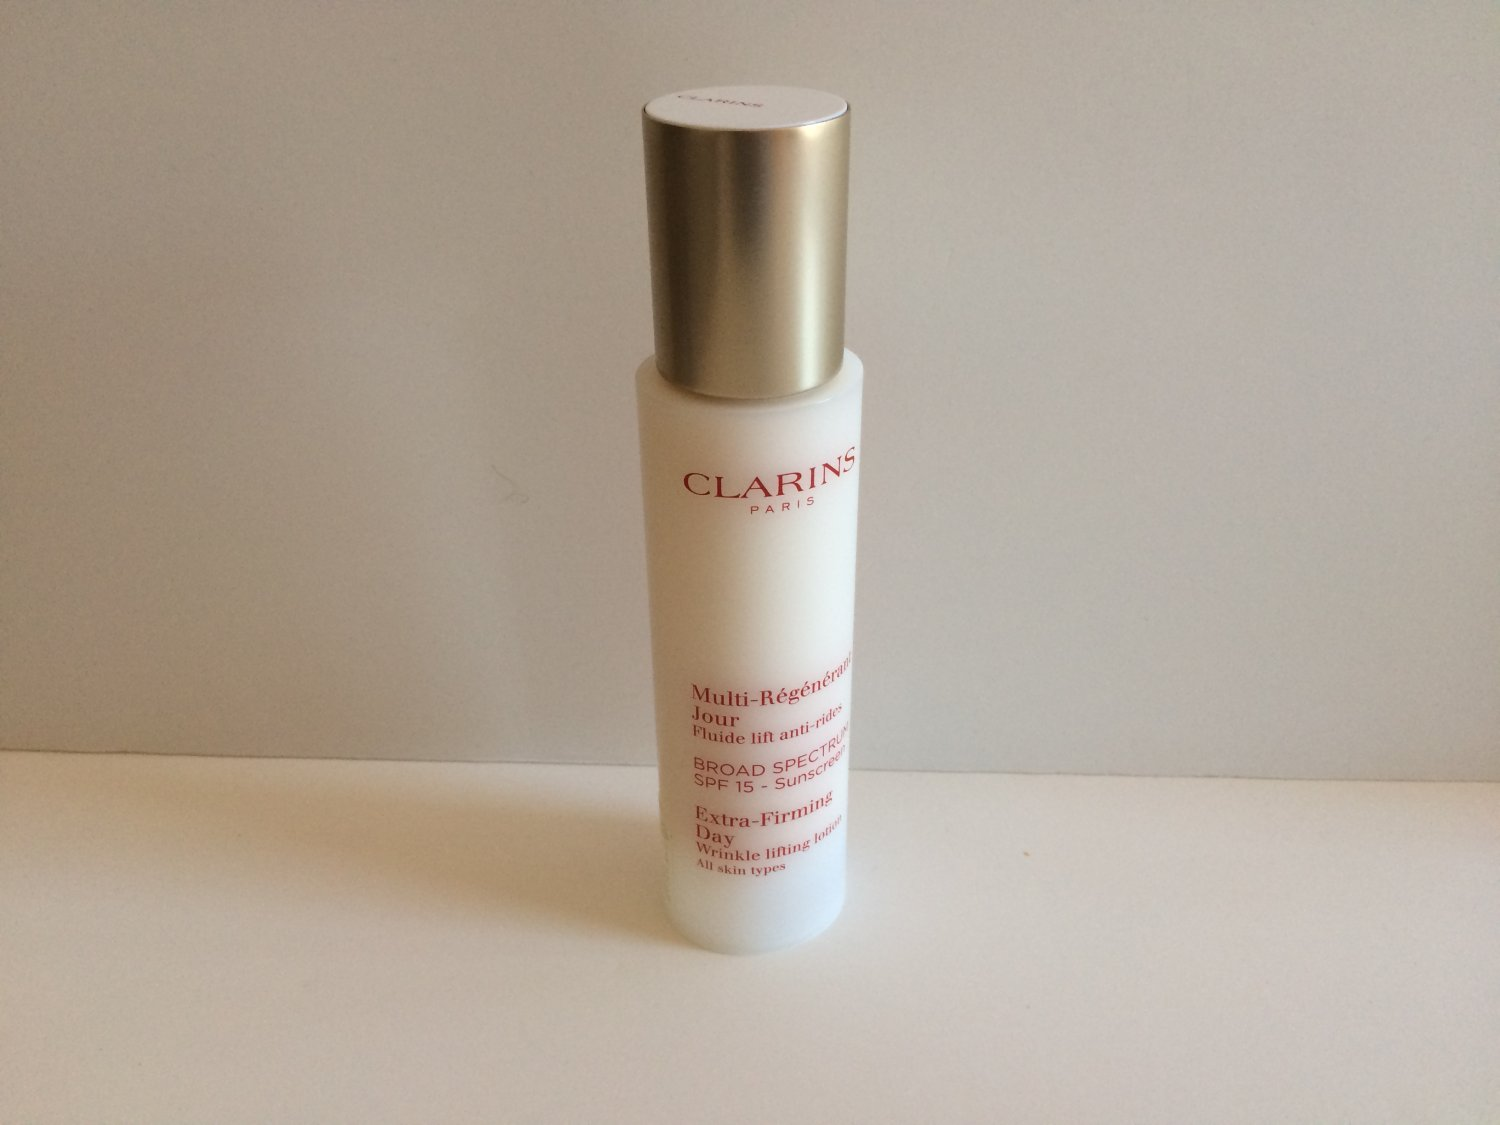 clarins extra firming day wrinkle lifting lotion 1 6 oz brand new unboxed. Black Bedroom Furniture Sets. Home Design Ideas